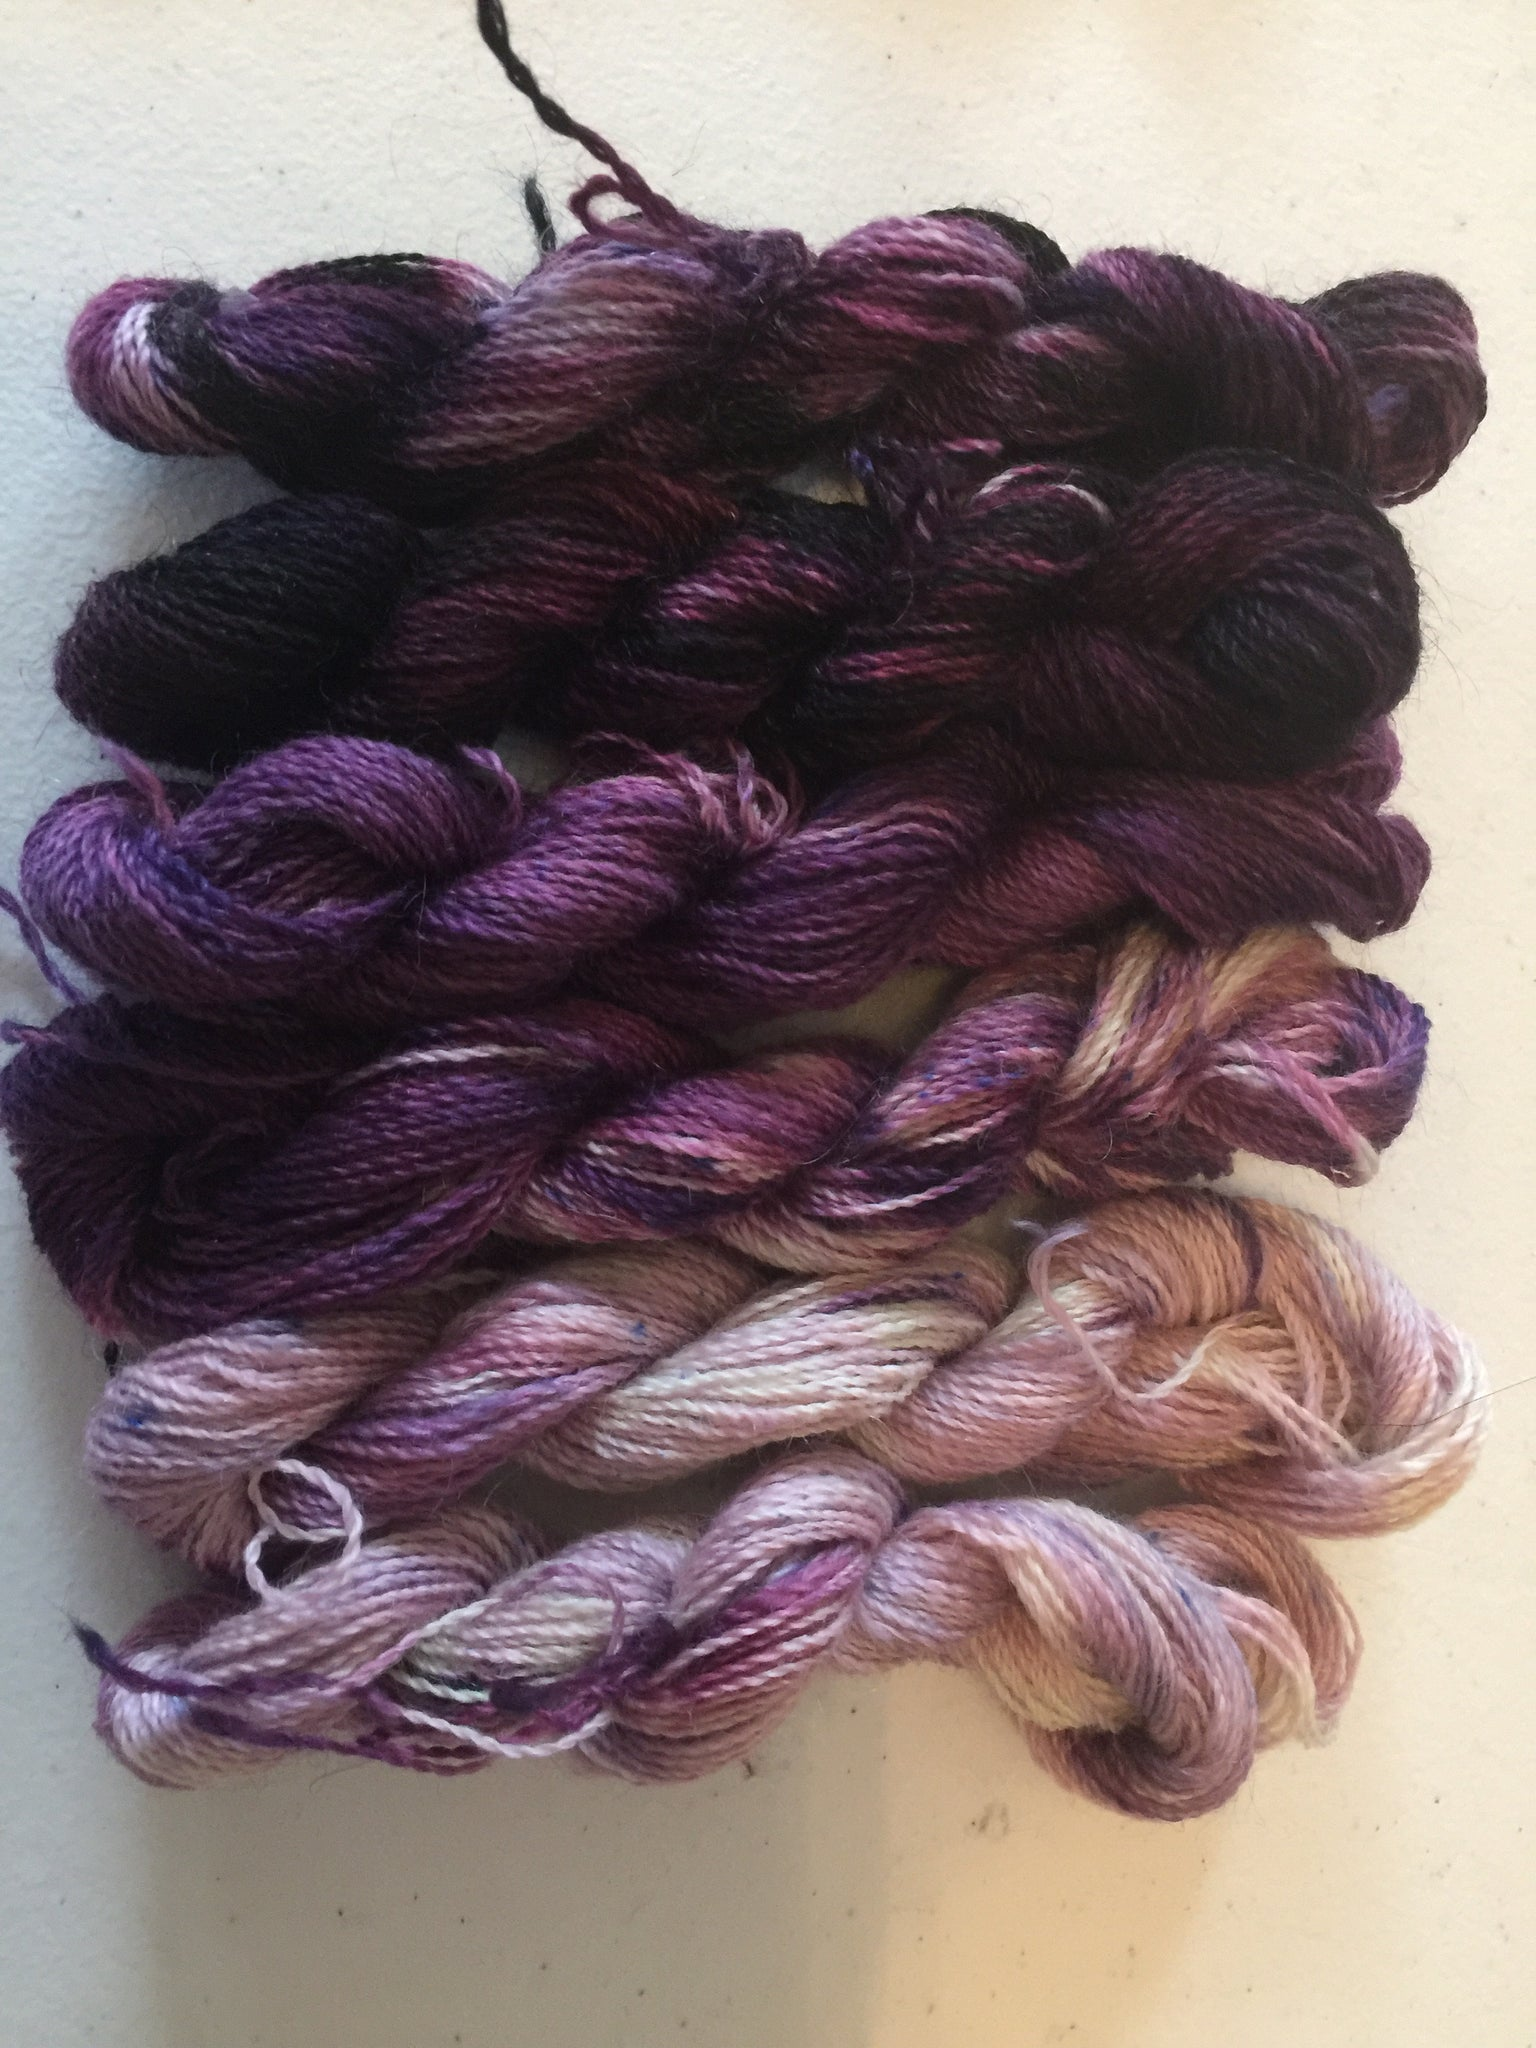 Mini skein yarn set